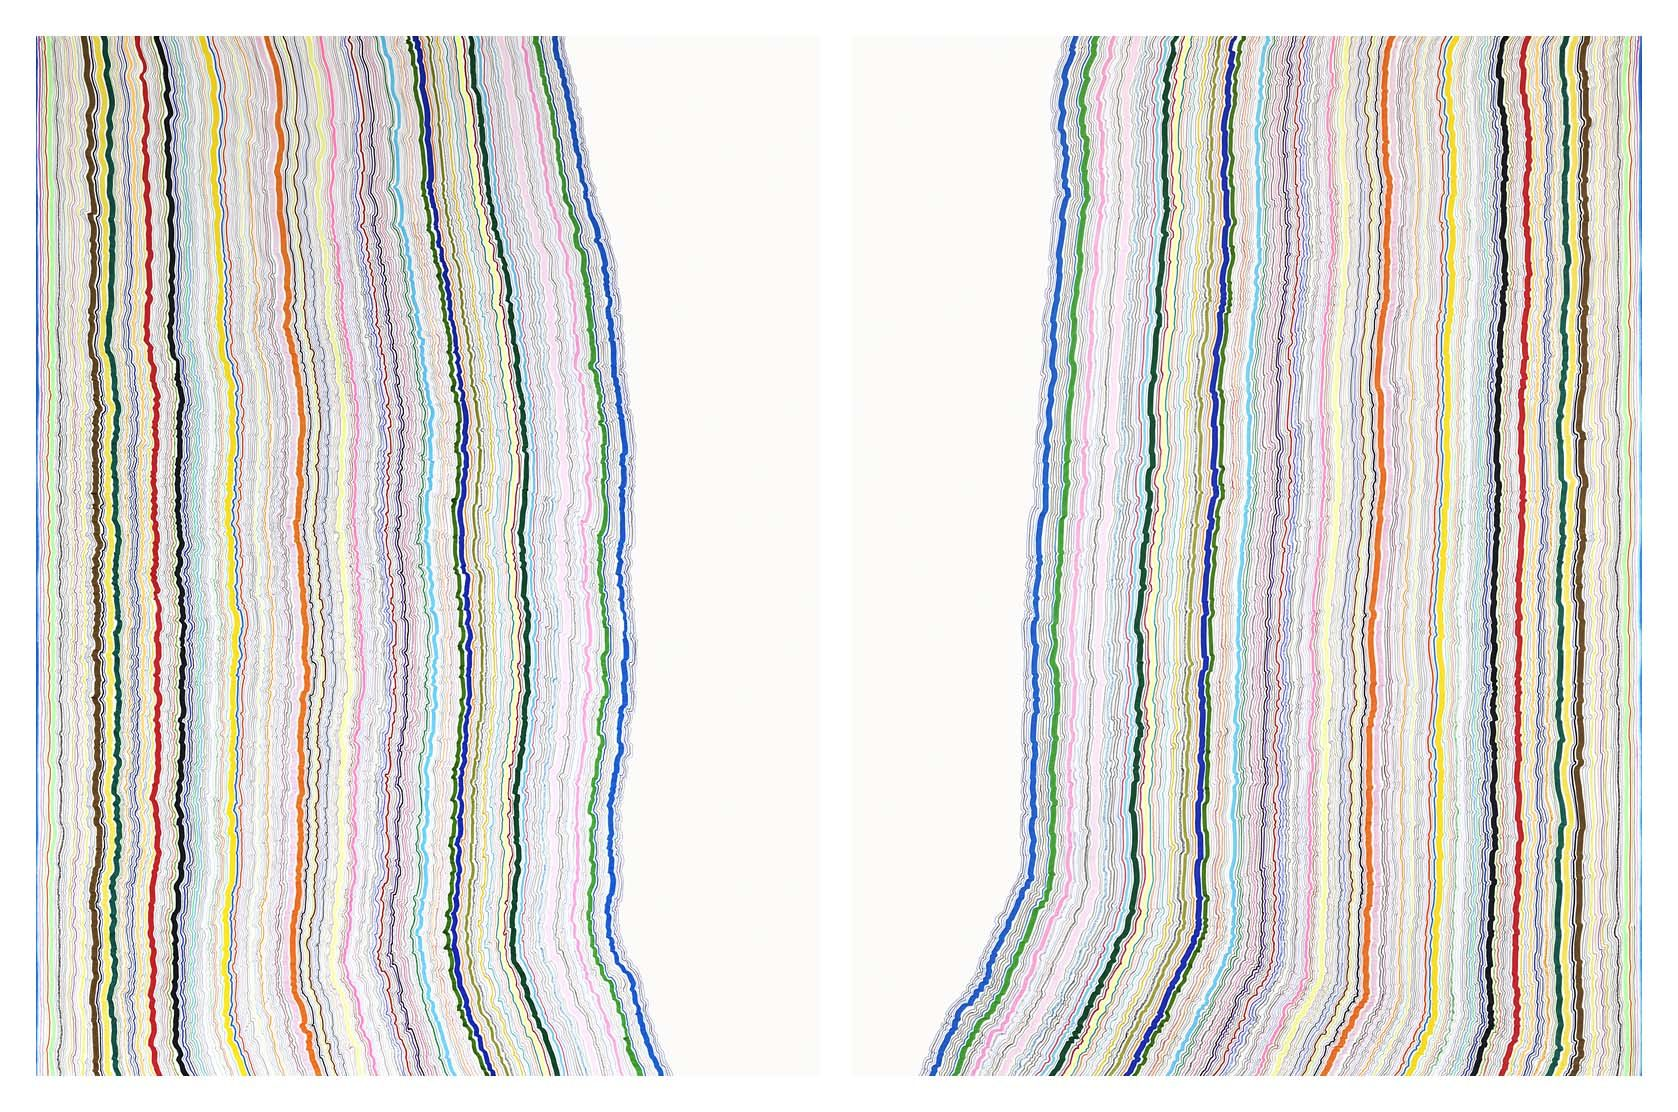 Rachel Perry Chiral Lines 21, 2016